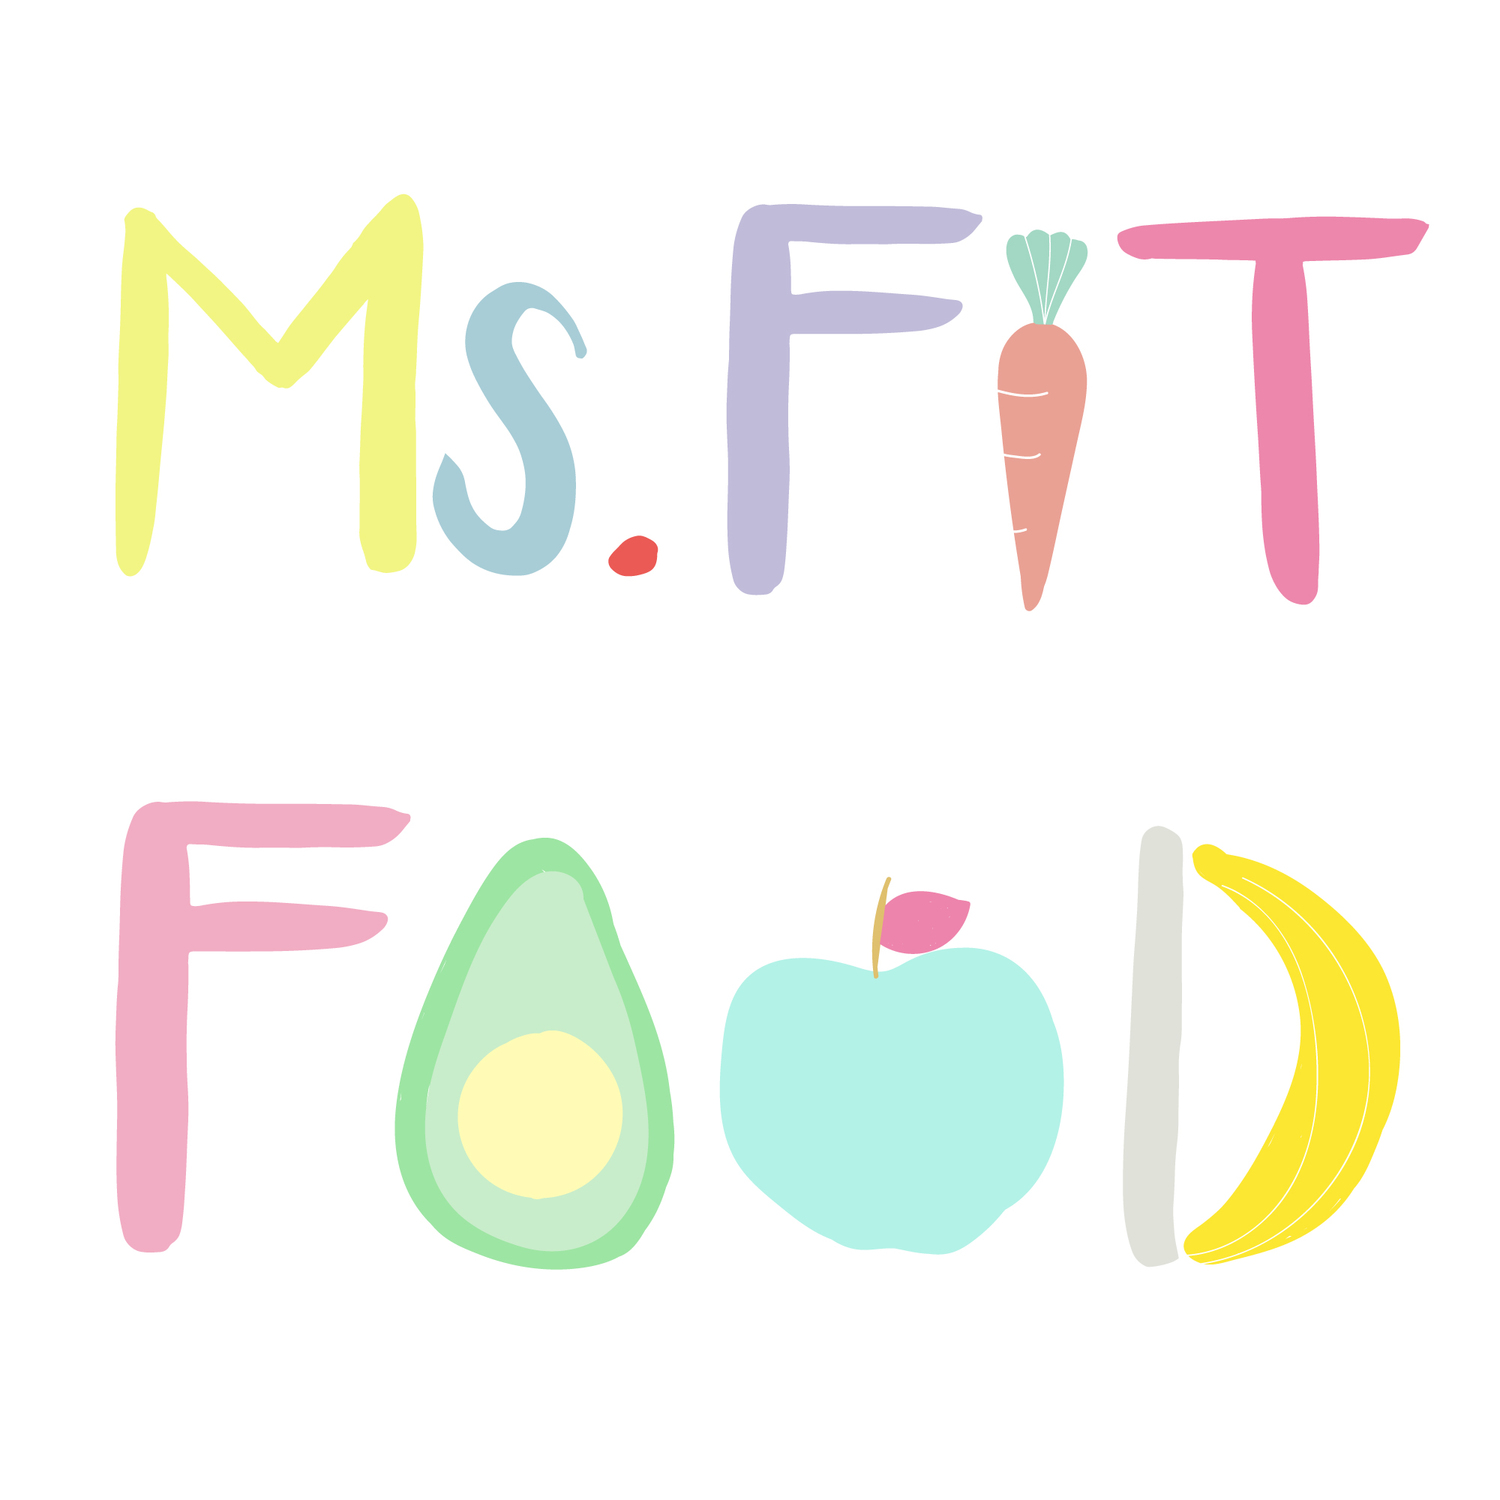 Ms. FitFood